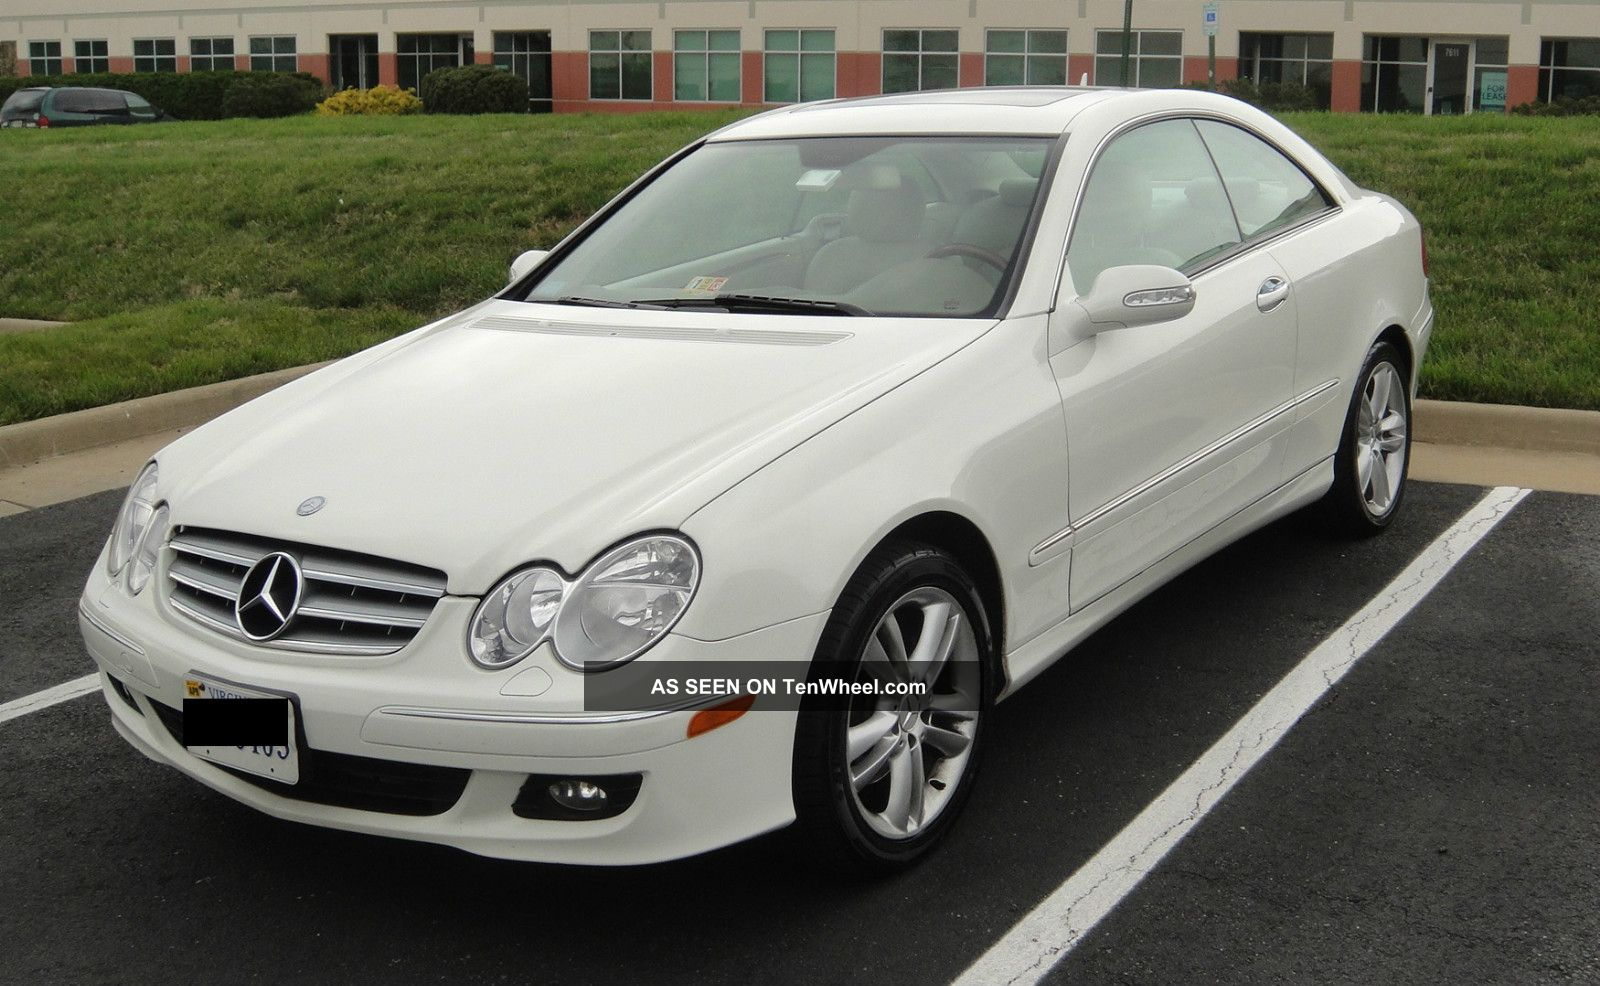 2007 mercedes benz clk350 base coupe 2 door 3 5l for 2007 mercedes benz clk